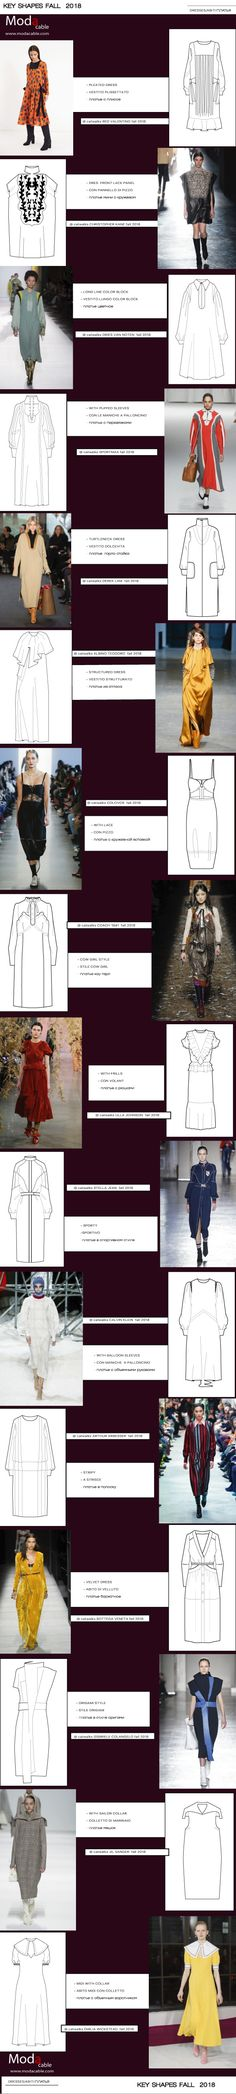 PopUp ModaCable.com Aw 2018, Technical Drawing, Popup, Trends 2018, Ss, Runway, Shapes, Fall, Cat Walk